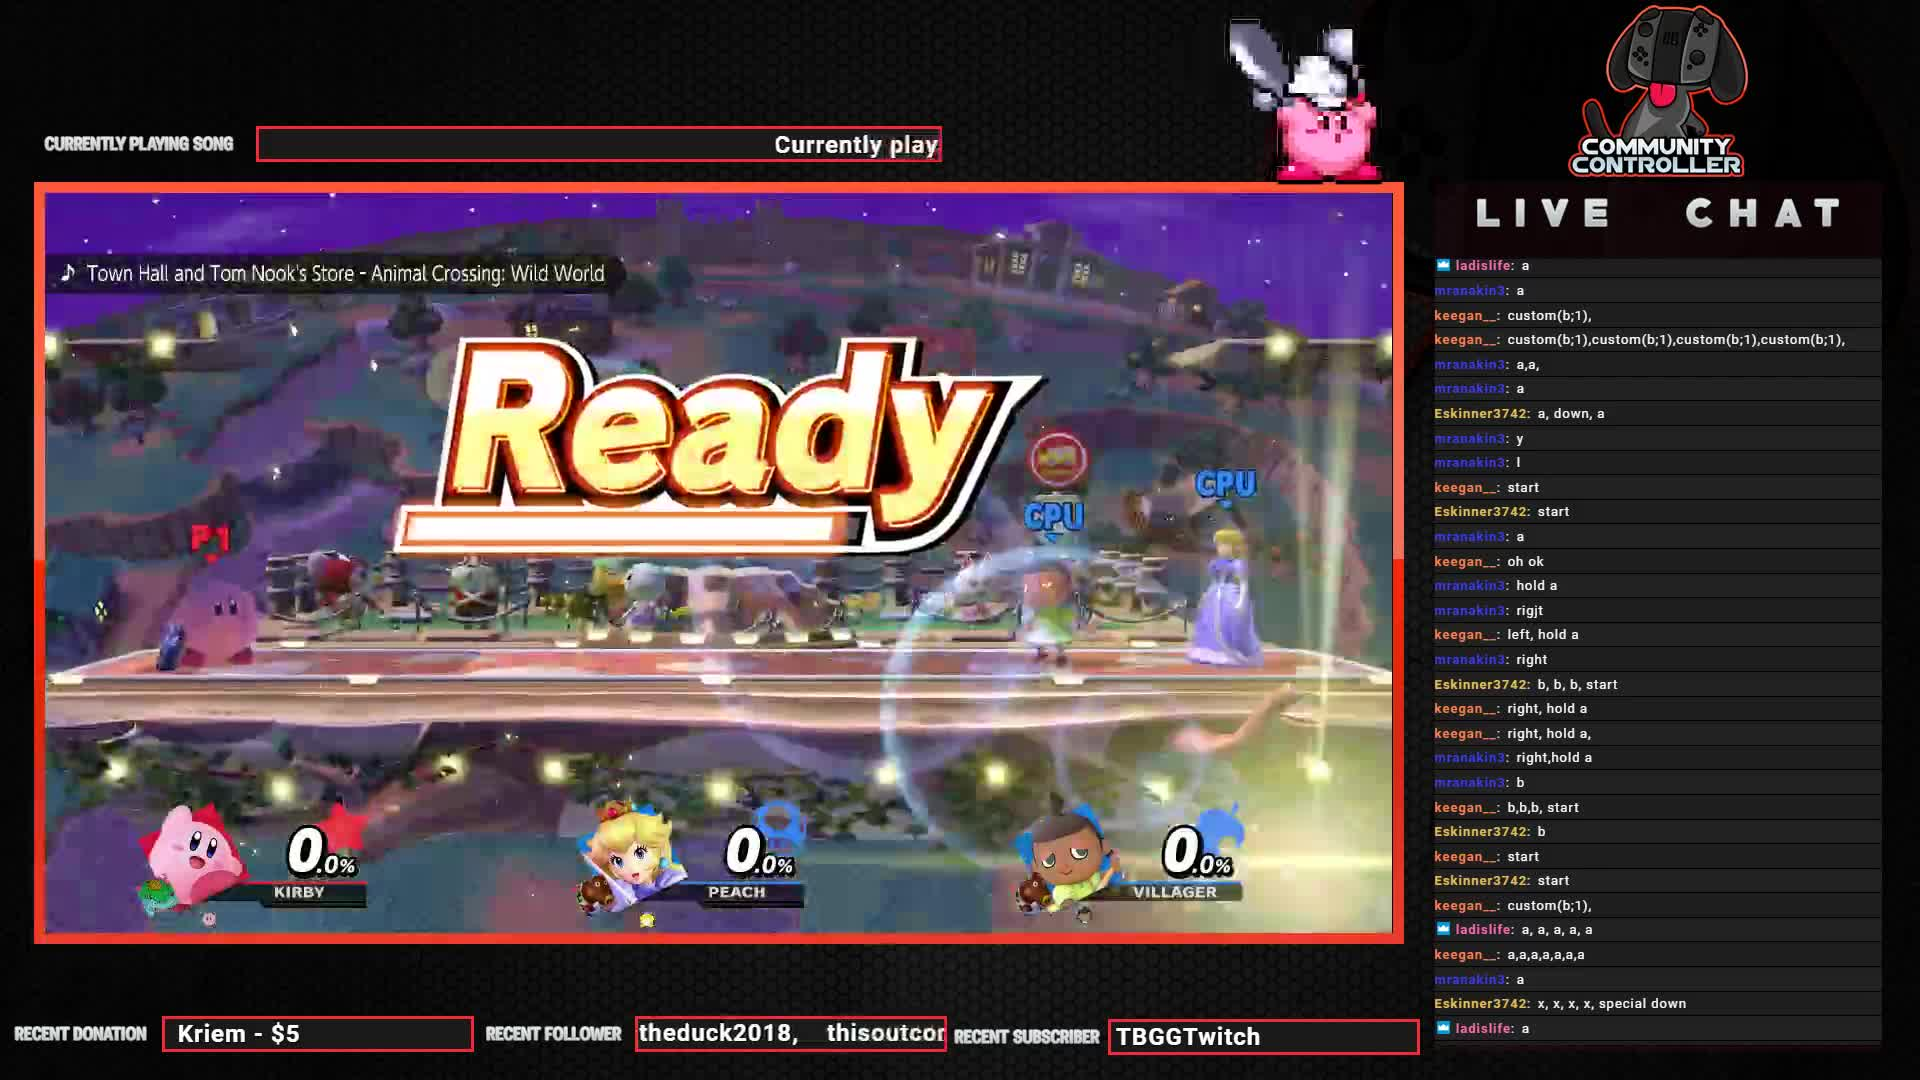 CommunityController - Peach CPU gets 2 saturns in a row in twitch